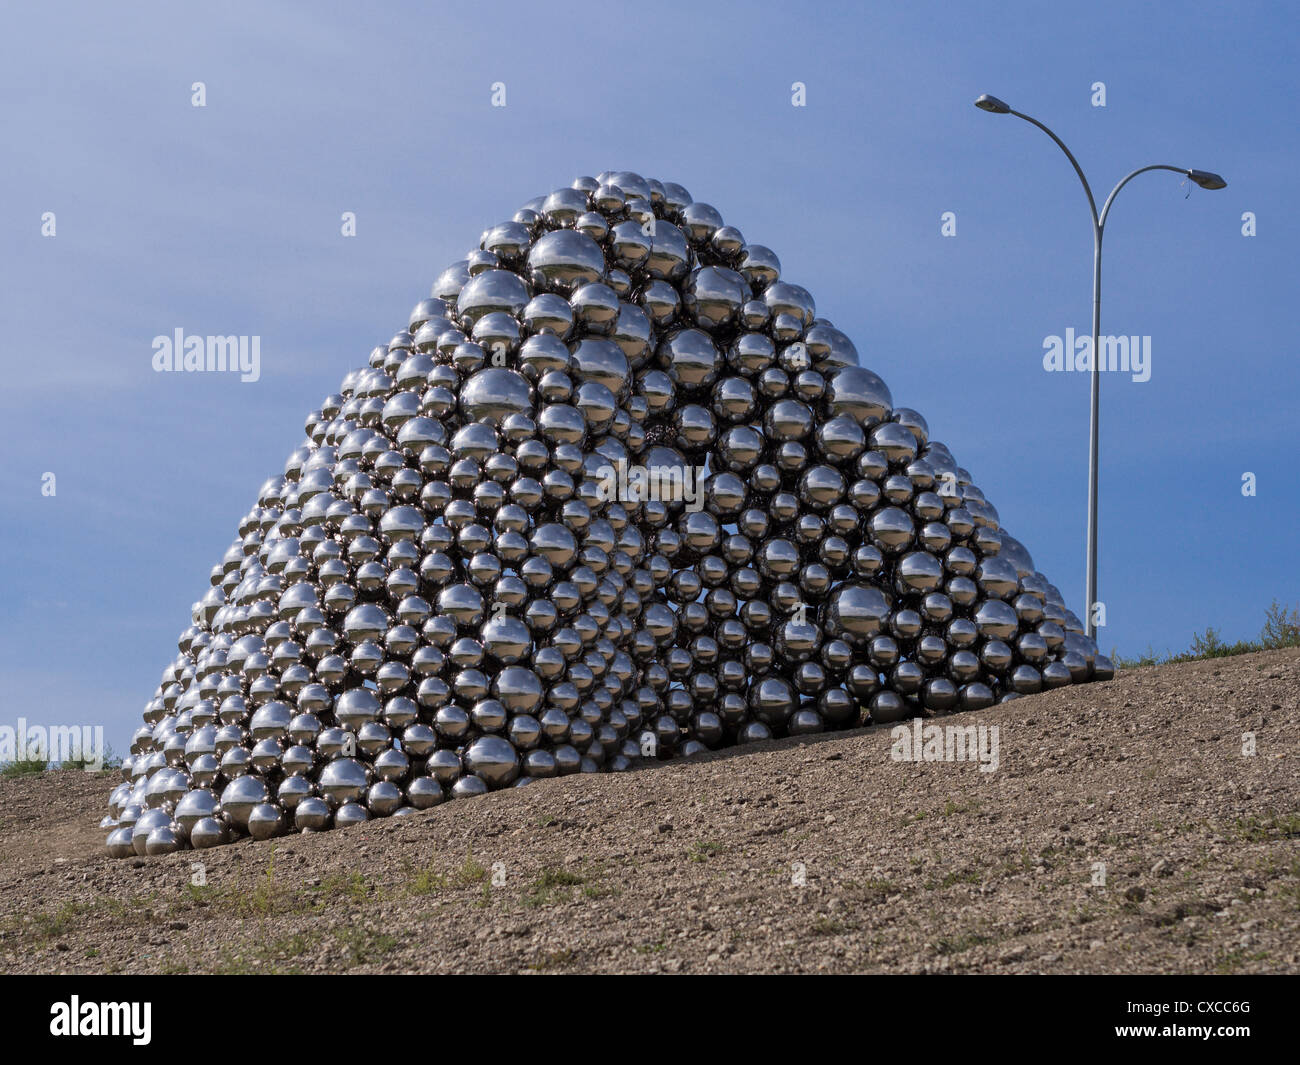 Talus Dome Sculpture with lamp. A $750,000 public art project along the side of a highway in Edmonton. - Stock Image